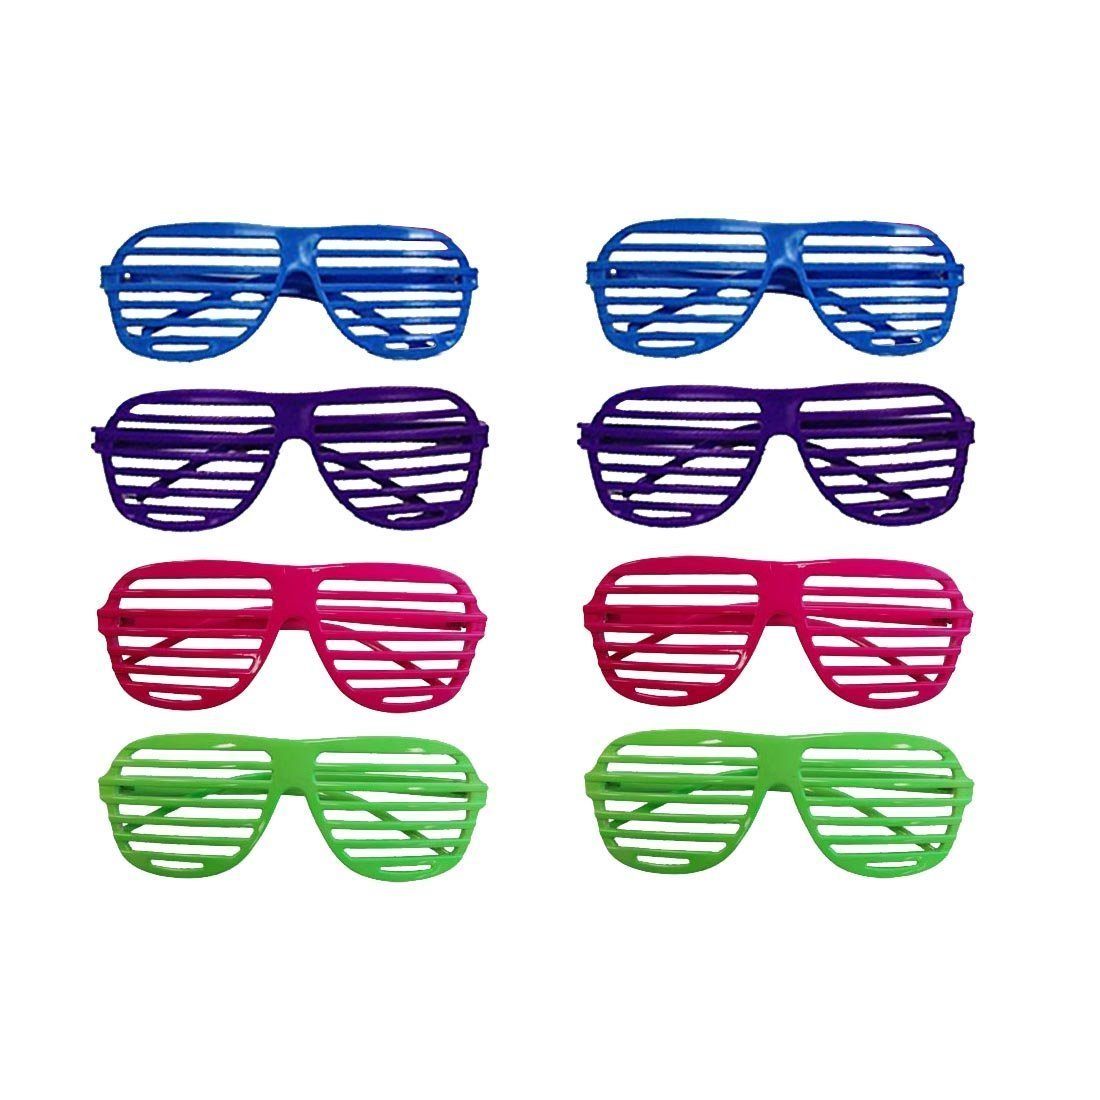 dazzling toys 80's 80's Slotted Toy Sunglasses Party Favors Costume - Pack of 12 - Assorted Colors